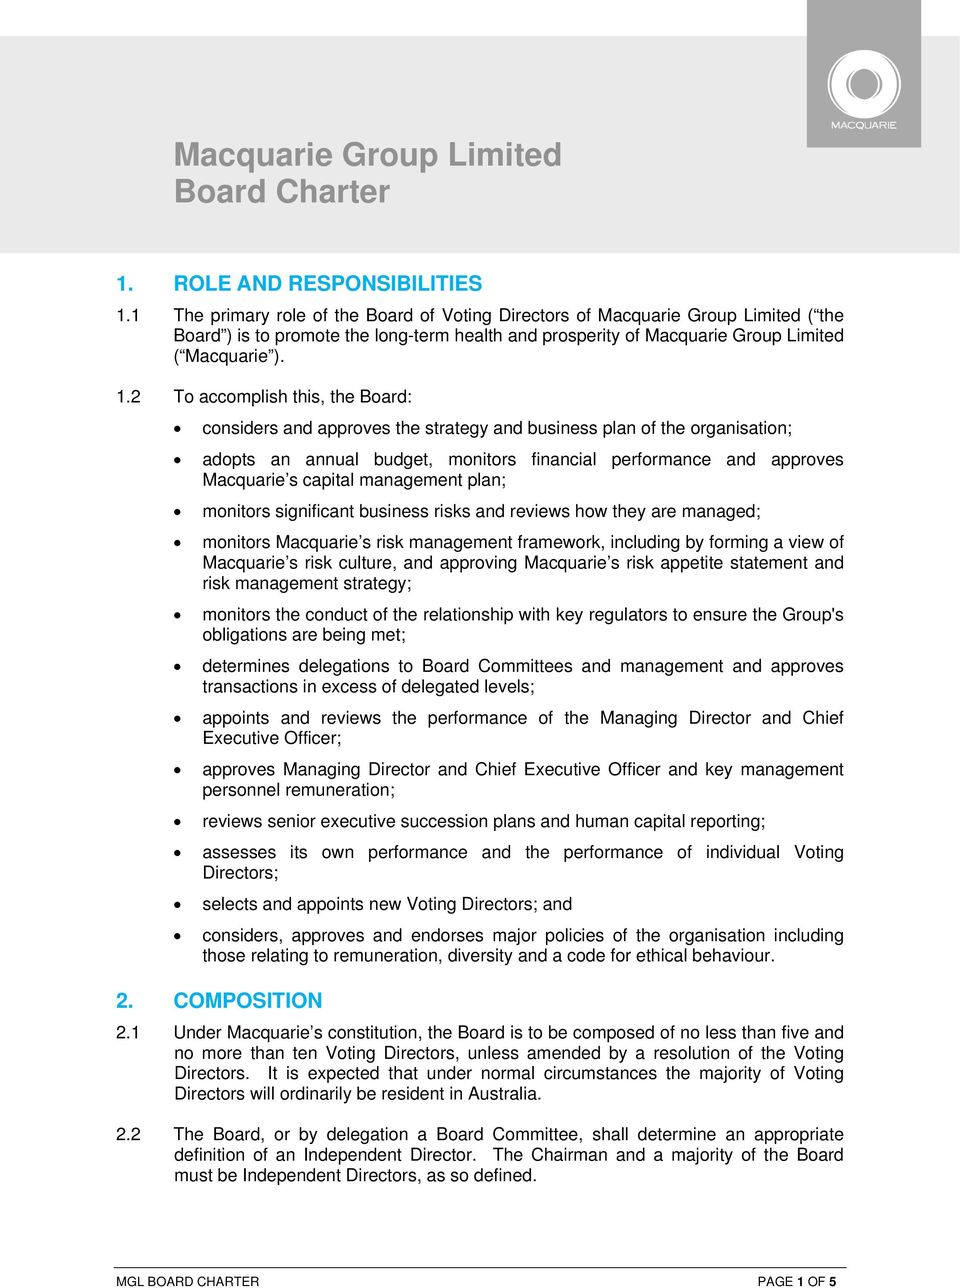 2 To accomplish this, the Board: considers and approves the strategy and business plan of the organisation; adopts an annual budget, monitors financial performance and approves Macquarie s capital